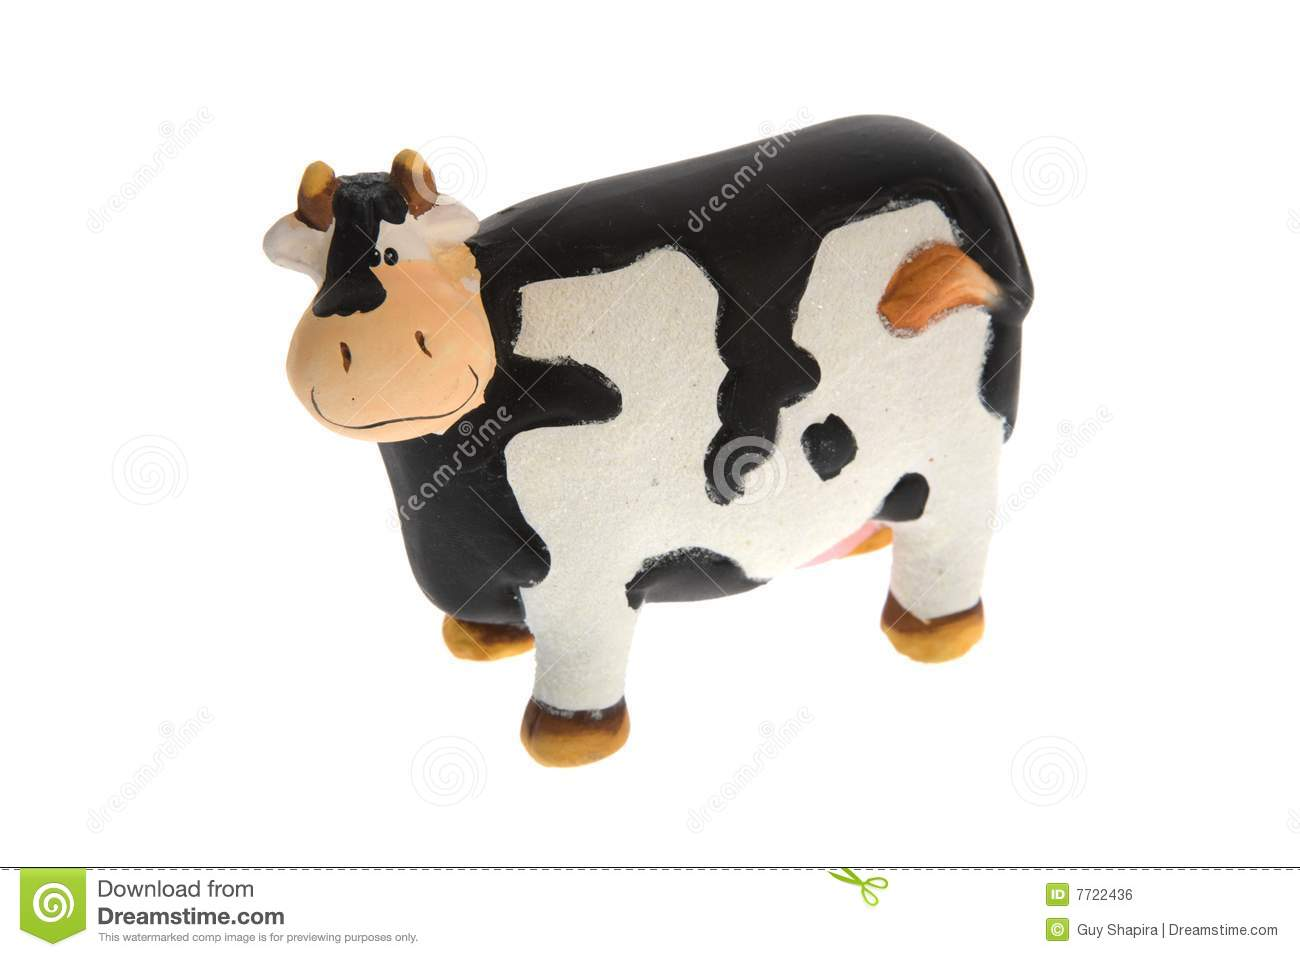 Crazy Toy Cow Royalty Free Stock Image   Image  7722436